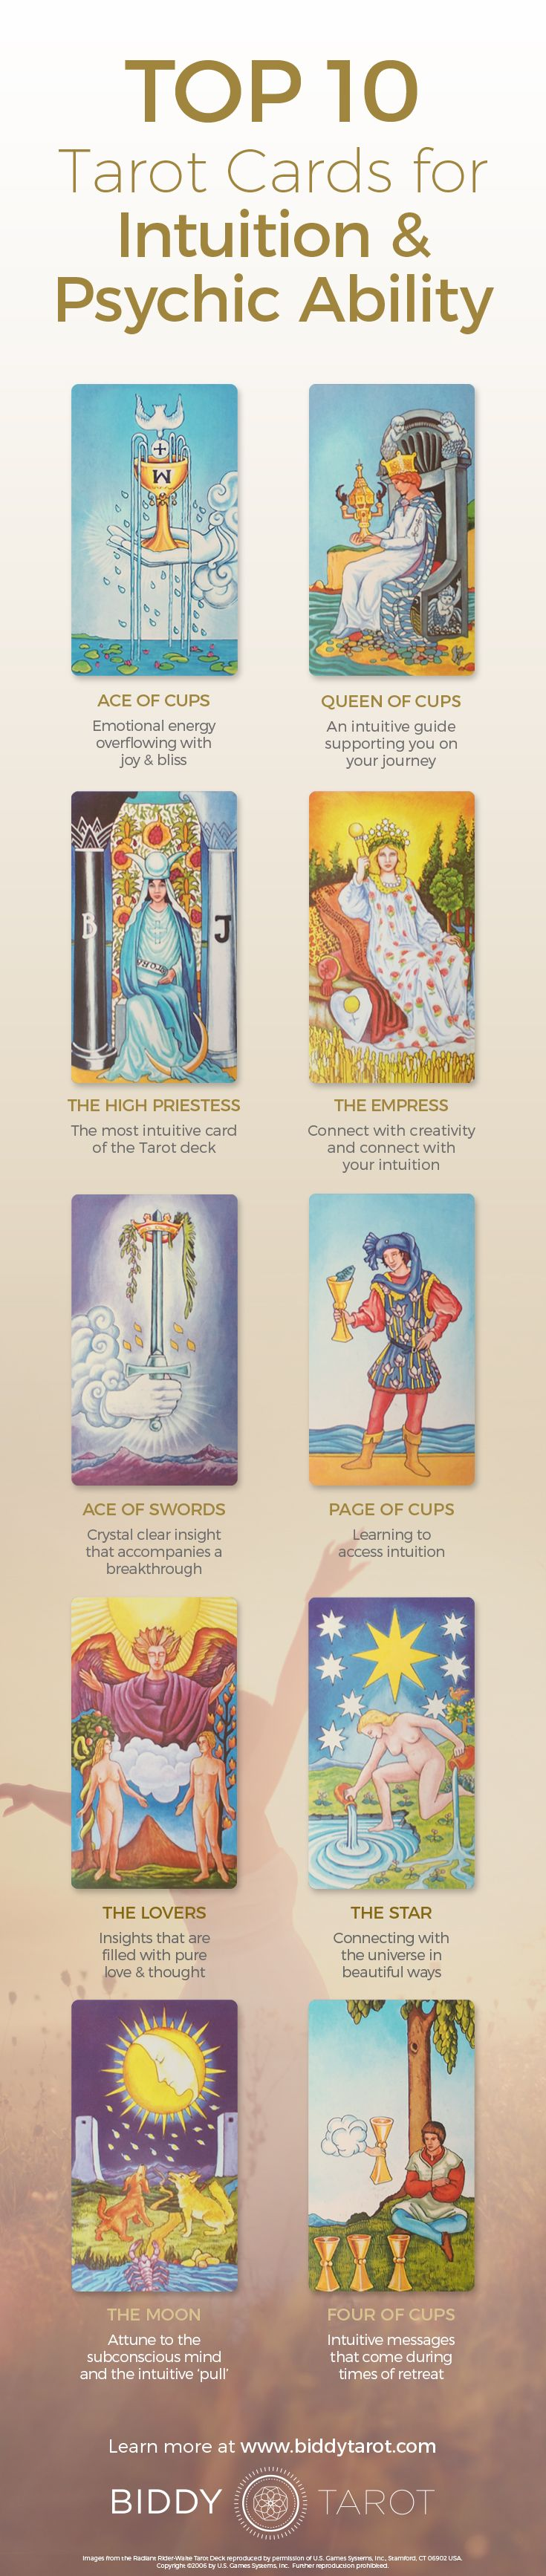 Go with your gut when these #Tarot cards appear. #Intuition is the key to understanding the answers being sought. Download your free copy of my Top 10 Tarot Cards for love, finances, career, life purpose and so much more at https://www.biddytarot.com/top-ten-cards-ebook/ It's my gift to you!